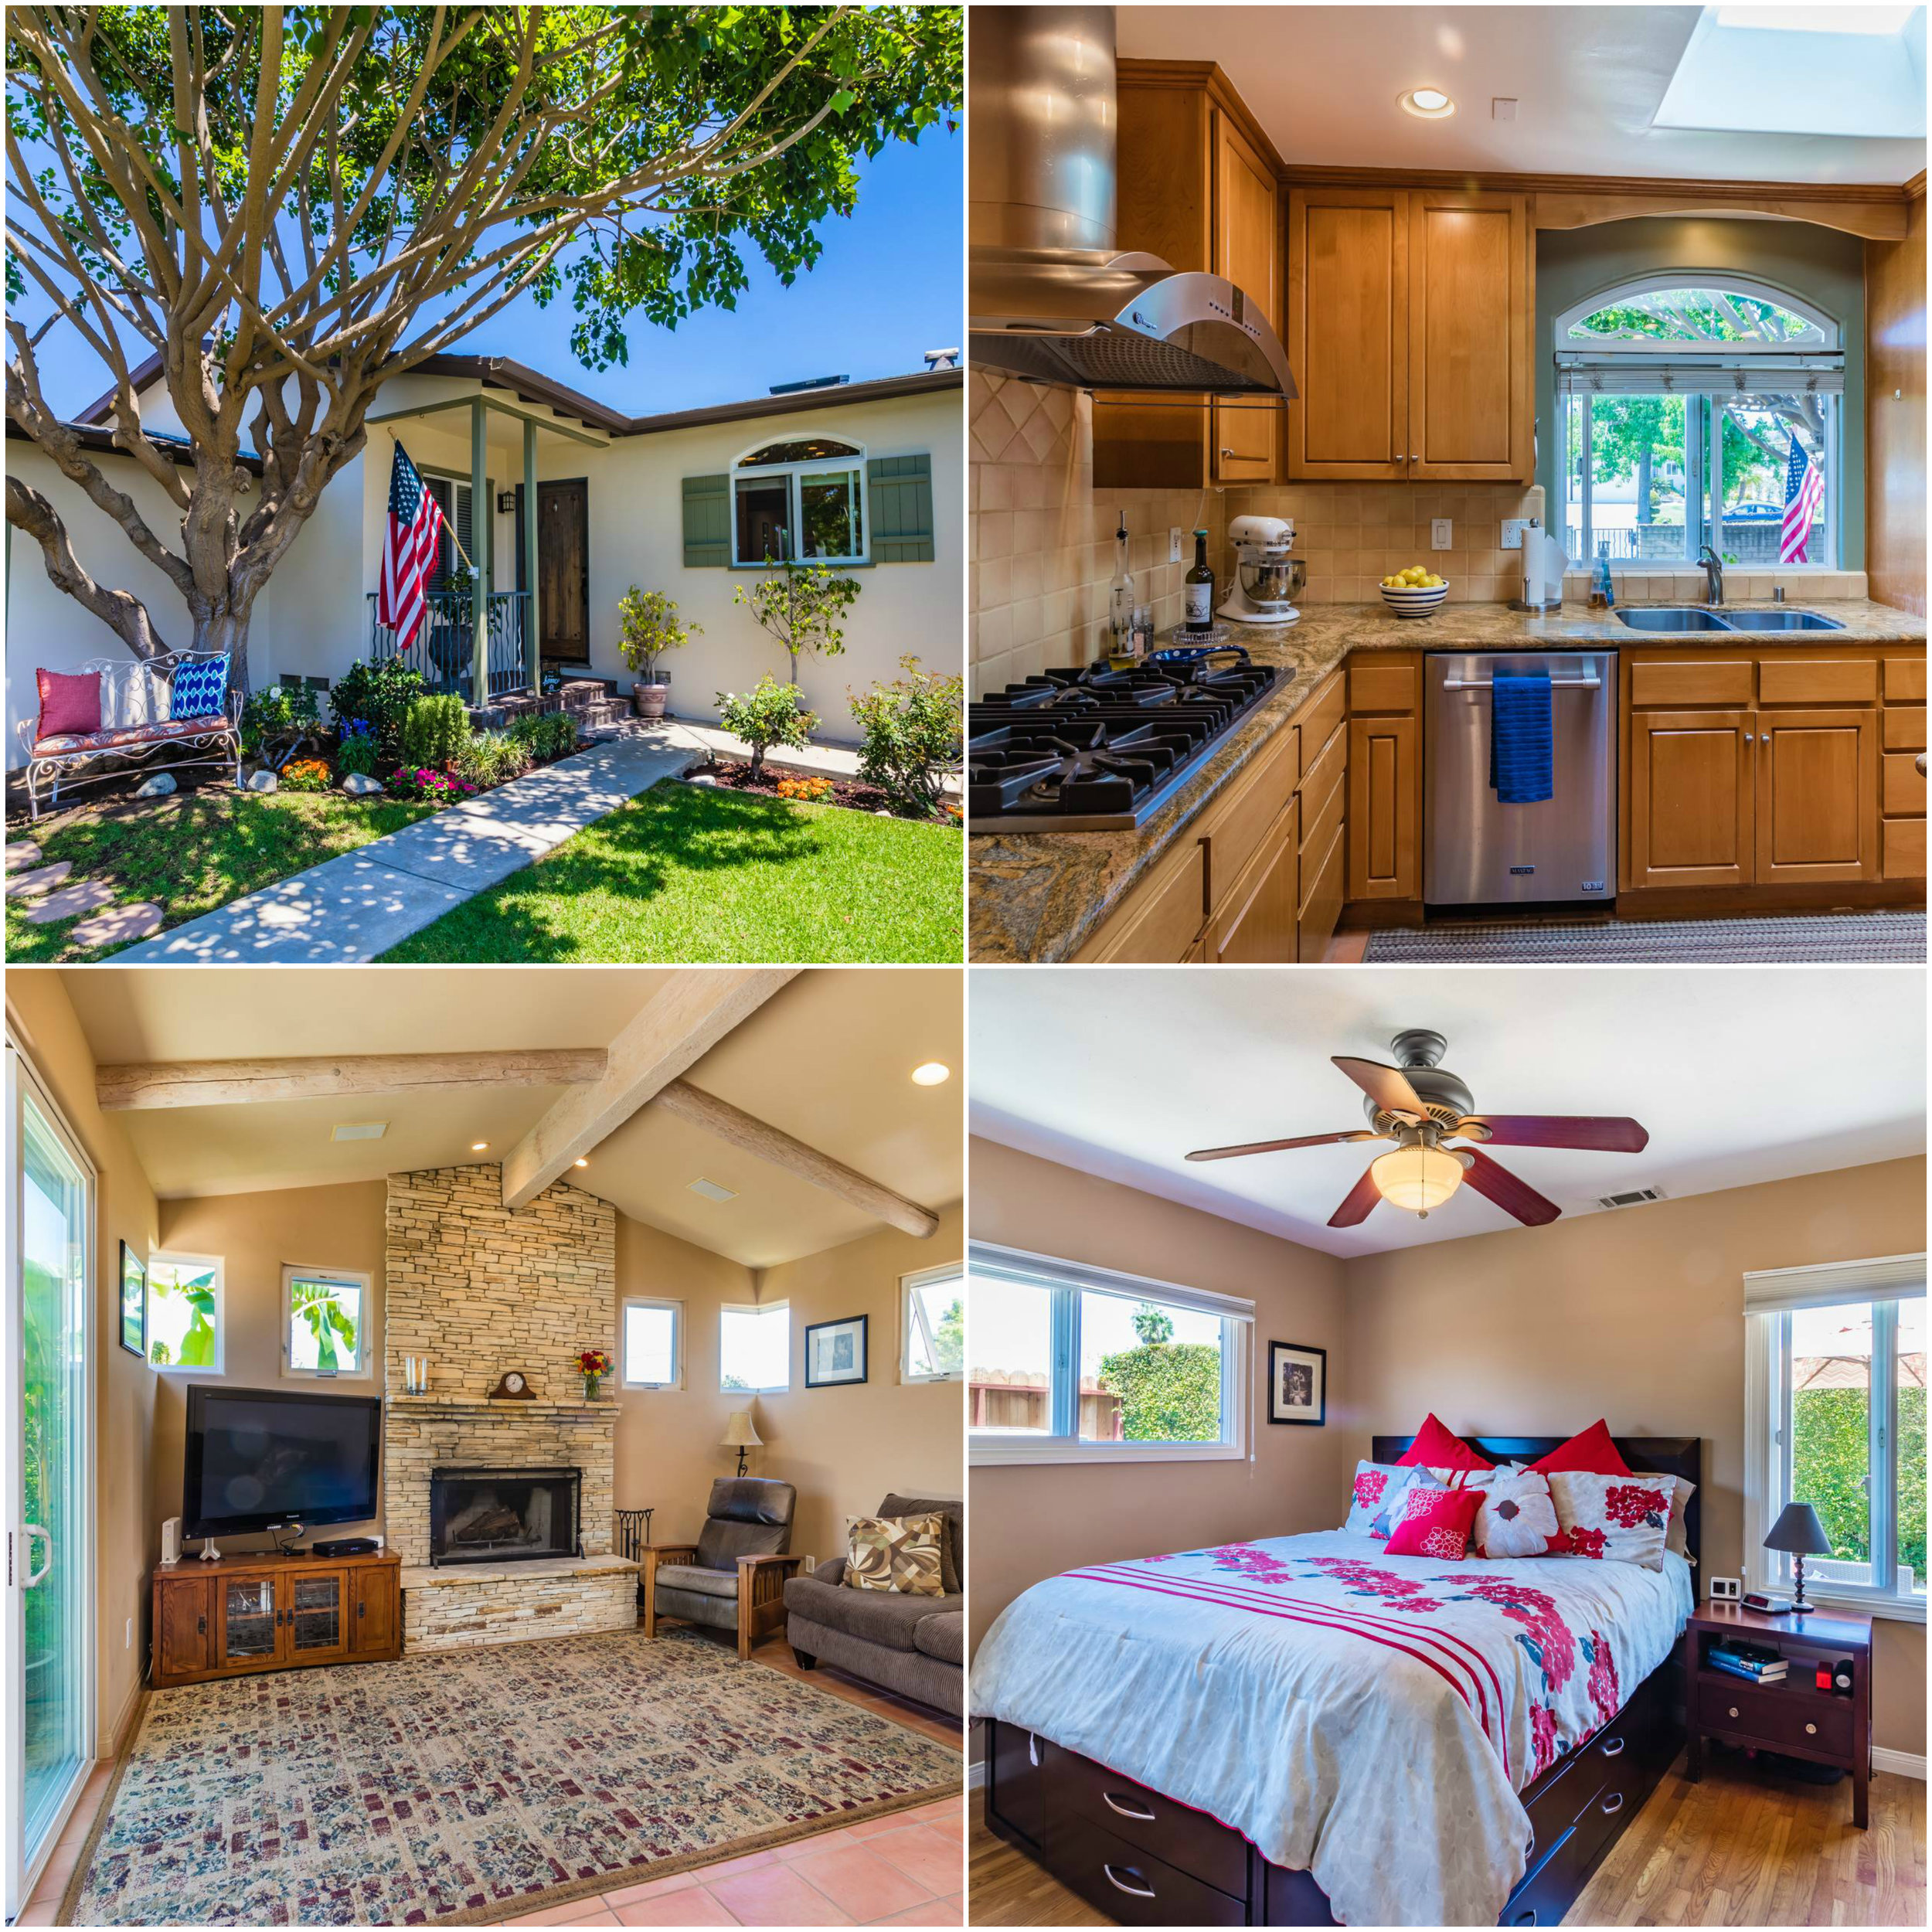 Real Estate photos of 2409 Grand Summit in Torrance, CA. Listed by  Justin Miller . Shot by Rob LeRoy